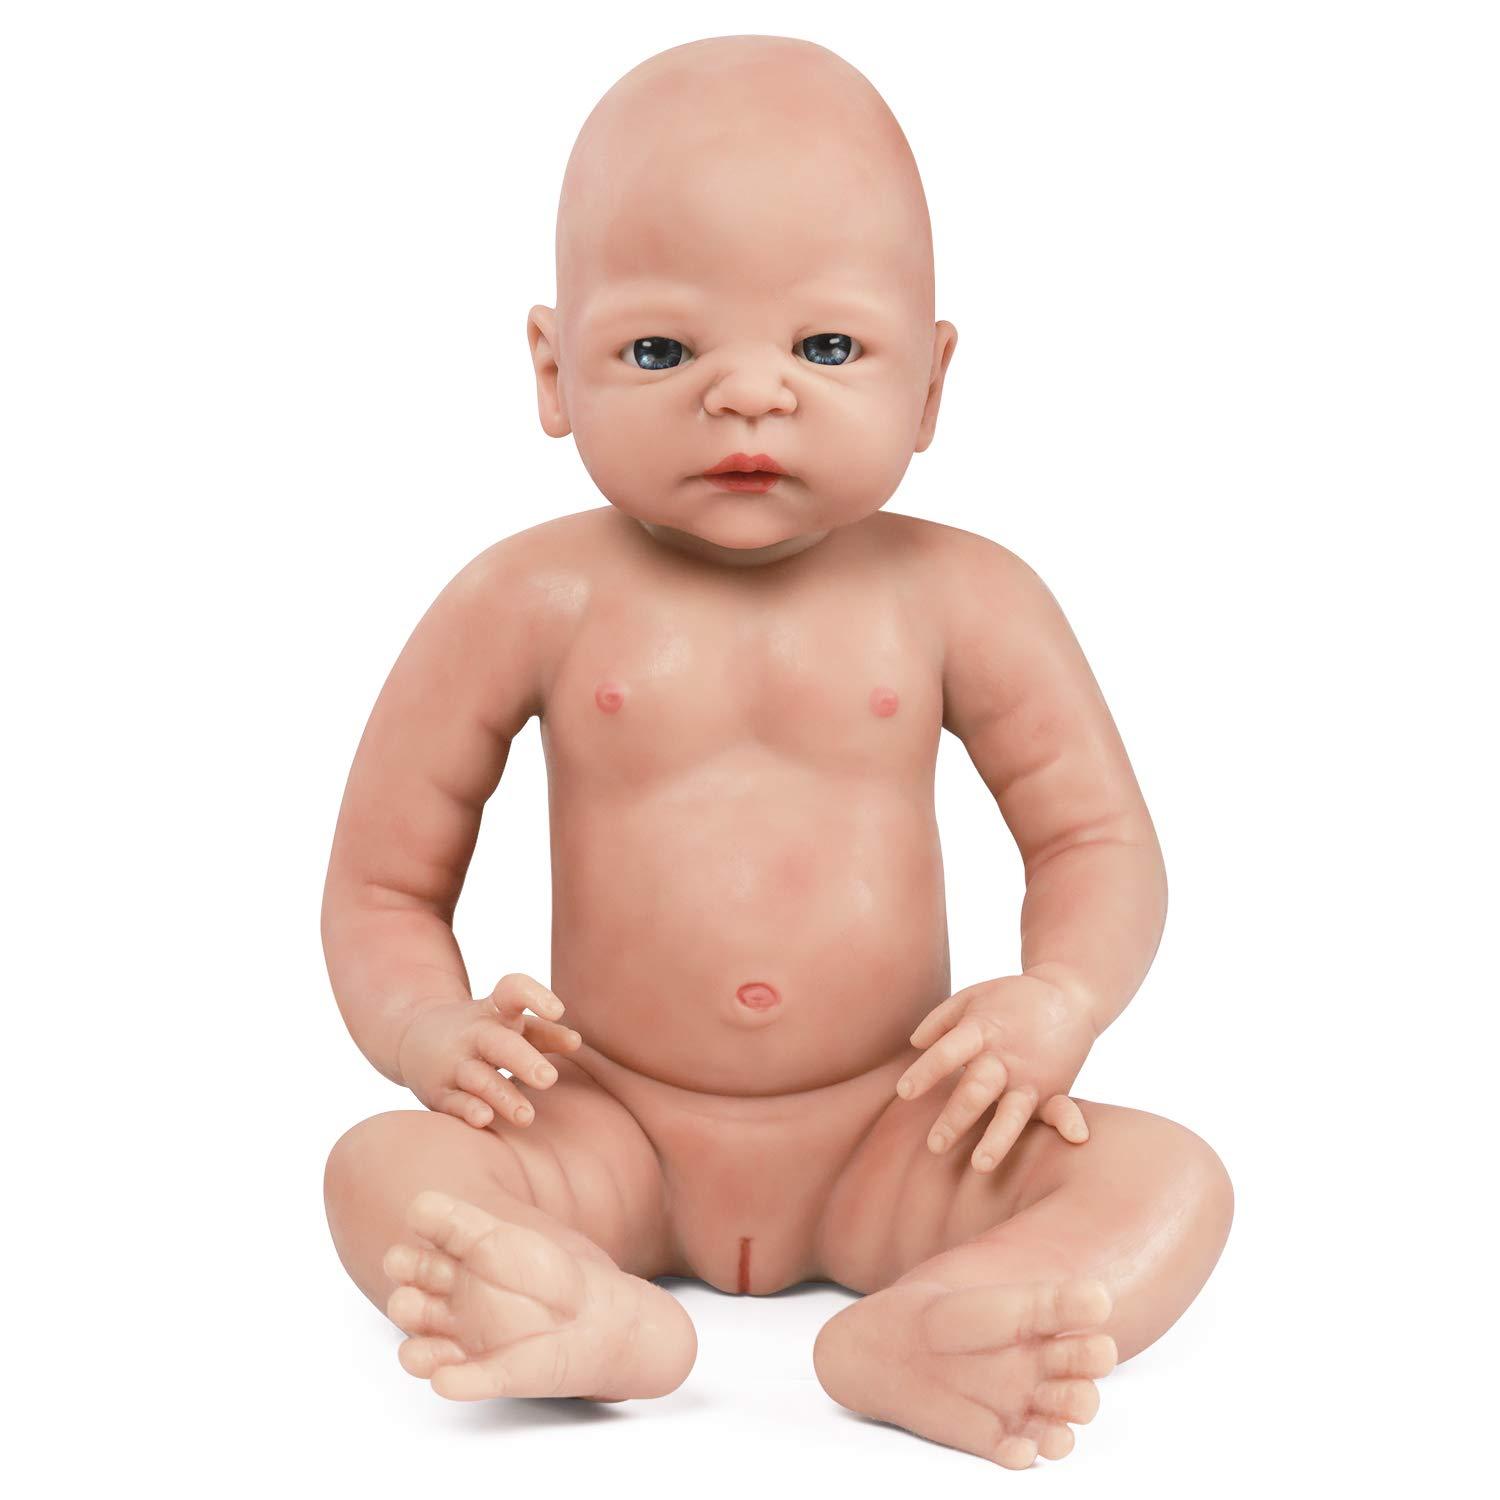 IVITA Full Body Silicone Reborn Baby Doll Realistic Newborn Baby Doll Handmade Blue Eyes Doll Collector Collection Girl 19 inch 8.36 lb